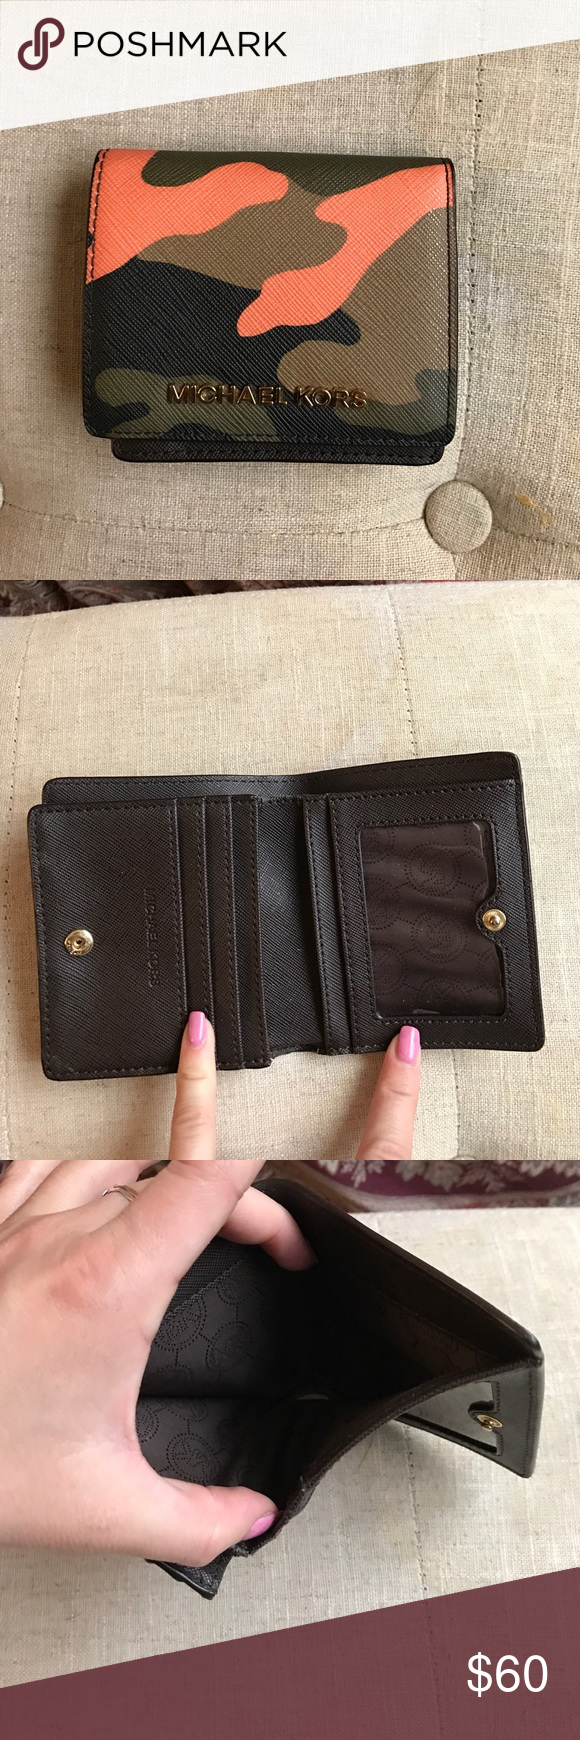 Wallet Micheal kors PERFECT CONDITION ARMY PRINT Michael Kors Bags Wallets